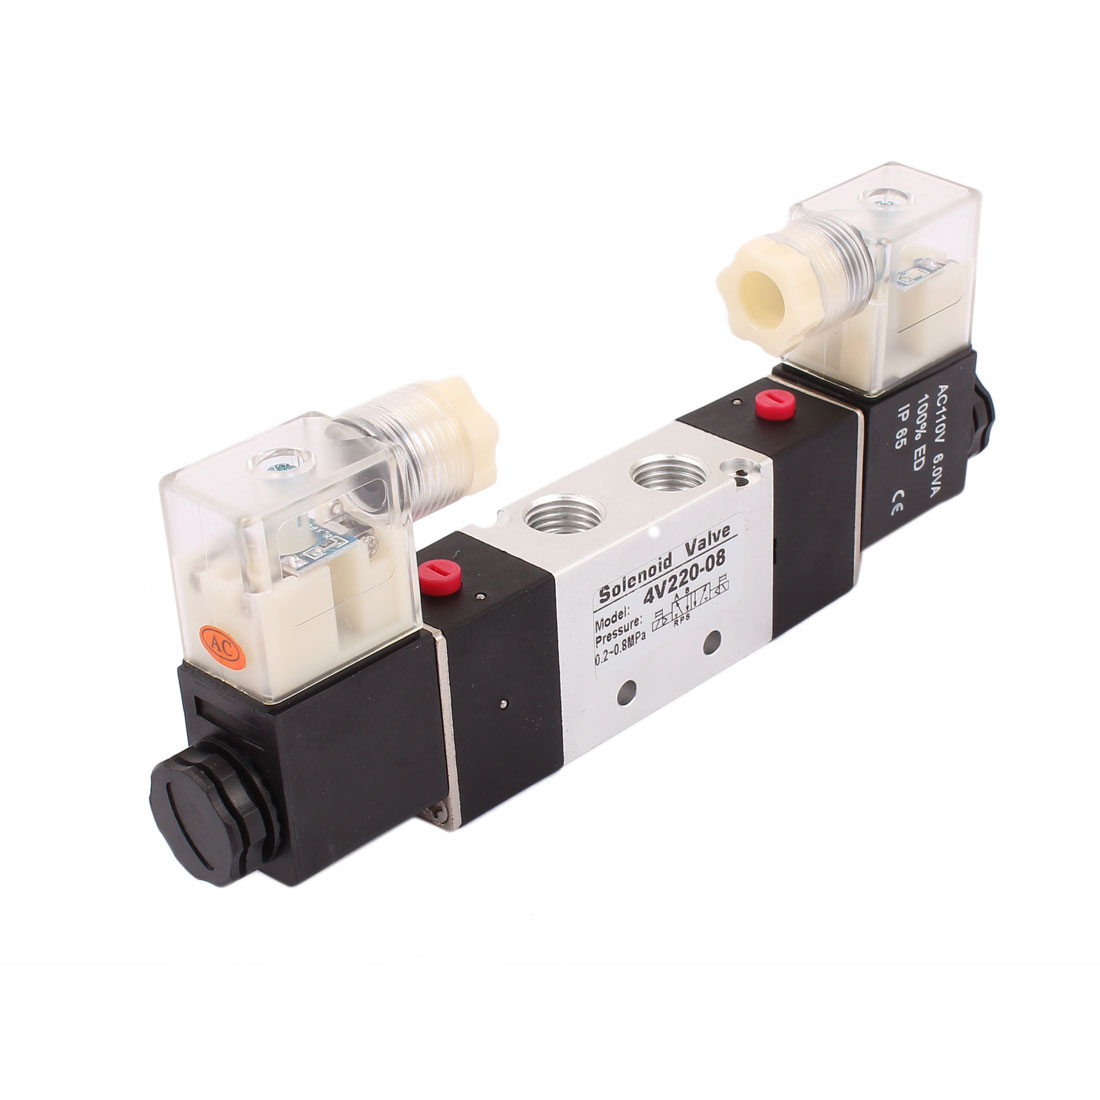 4V220-08 AC 110V 2 Position 5 Way G1/4 Neutral Air Selector Solenoid Valve